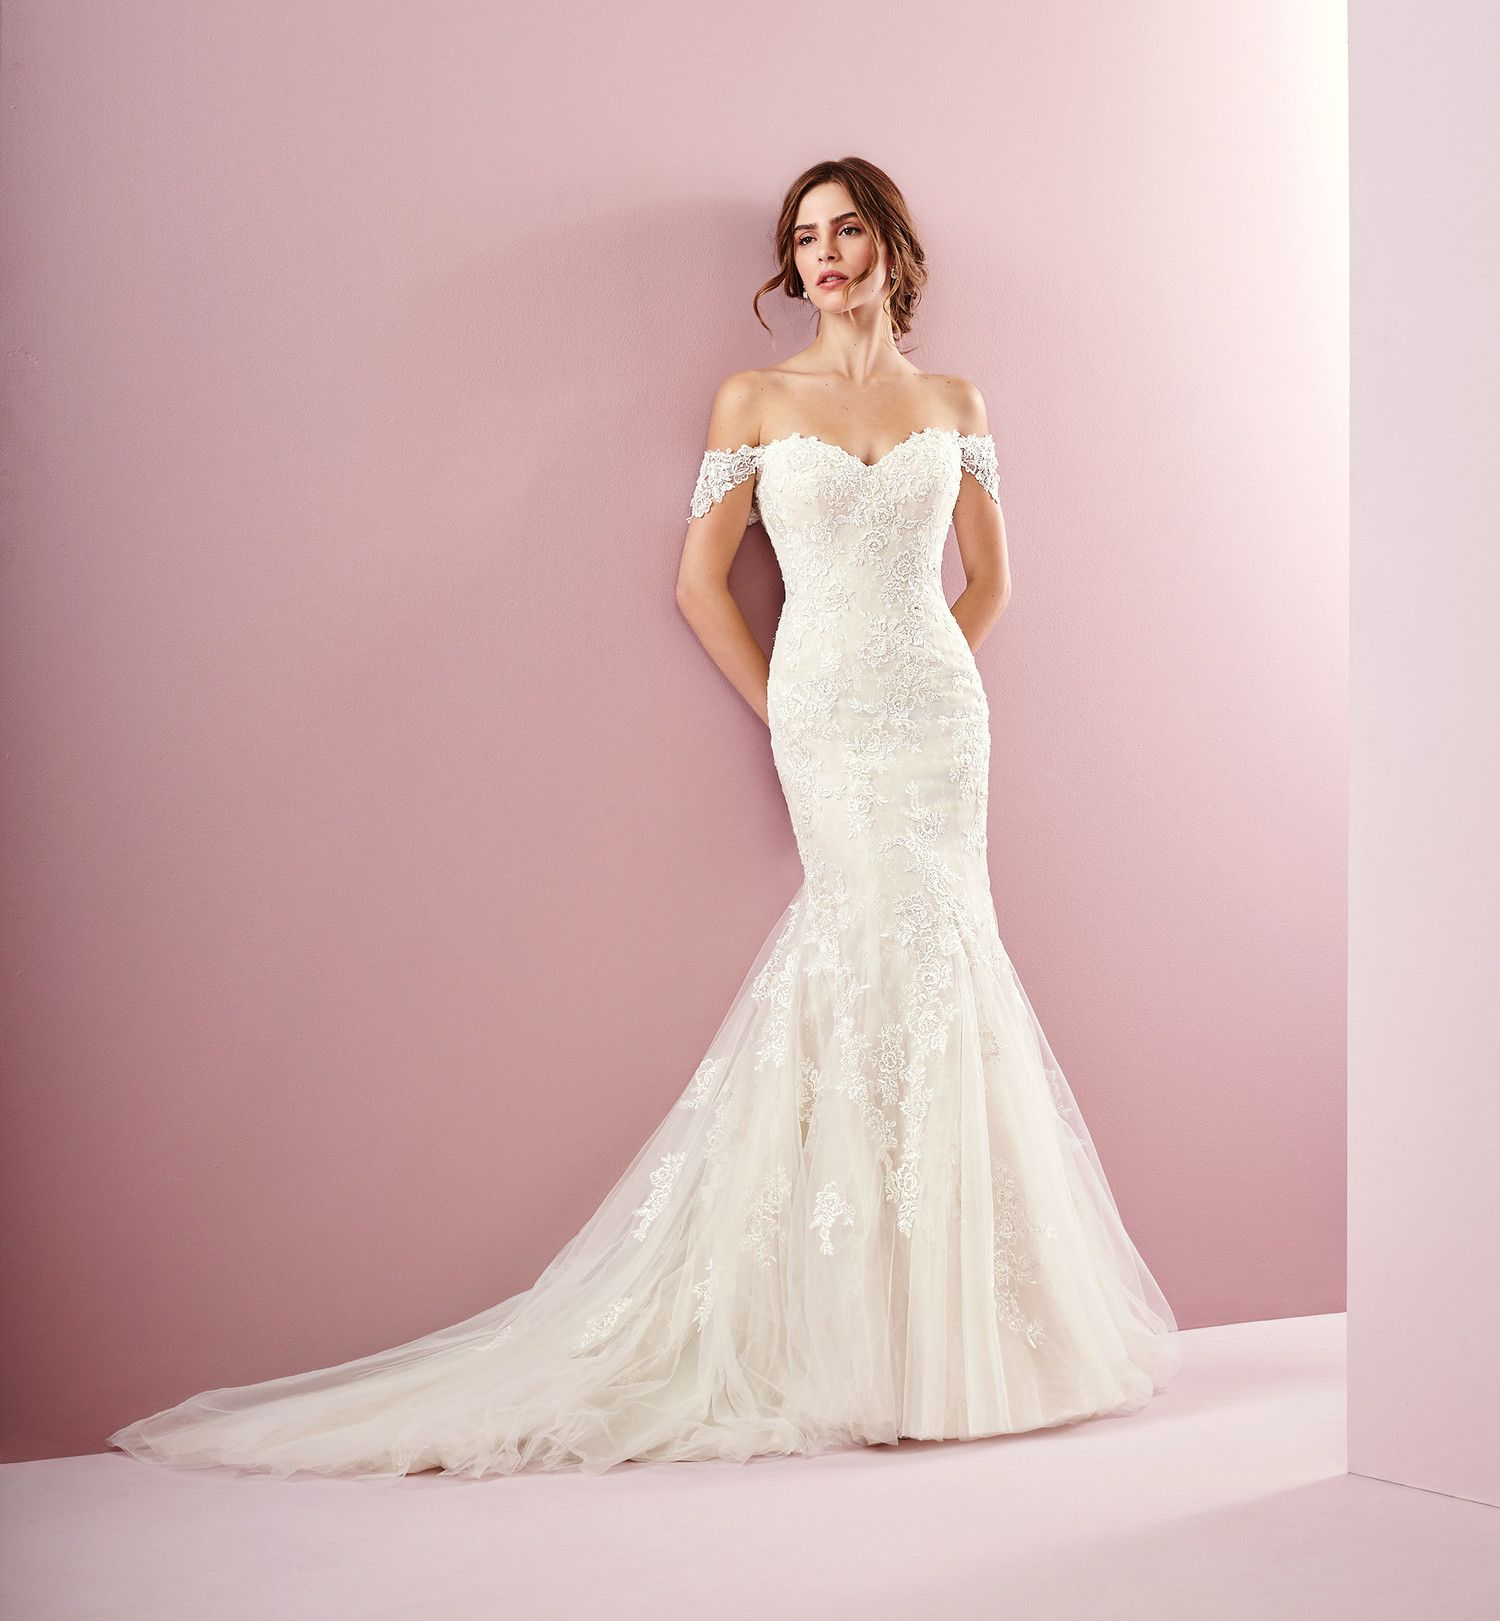 Rebecca ingram spring 2019 wedding dress collection pinterest amber lace trumpet wedding dress with off the shoulder neckline by rebecca junglespirit Images